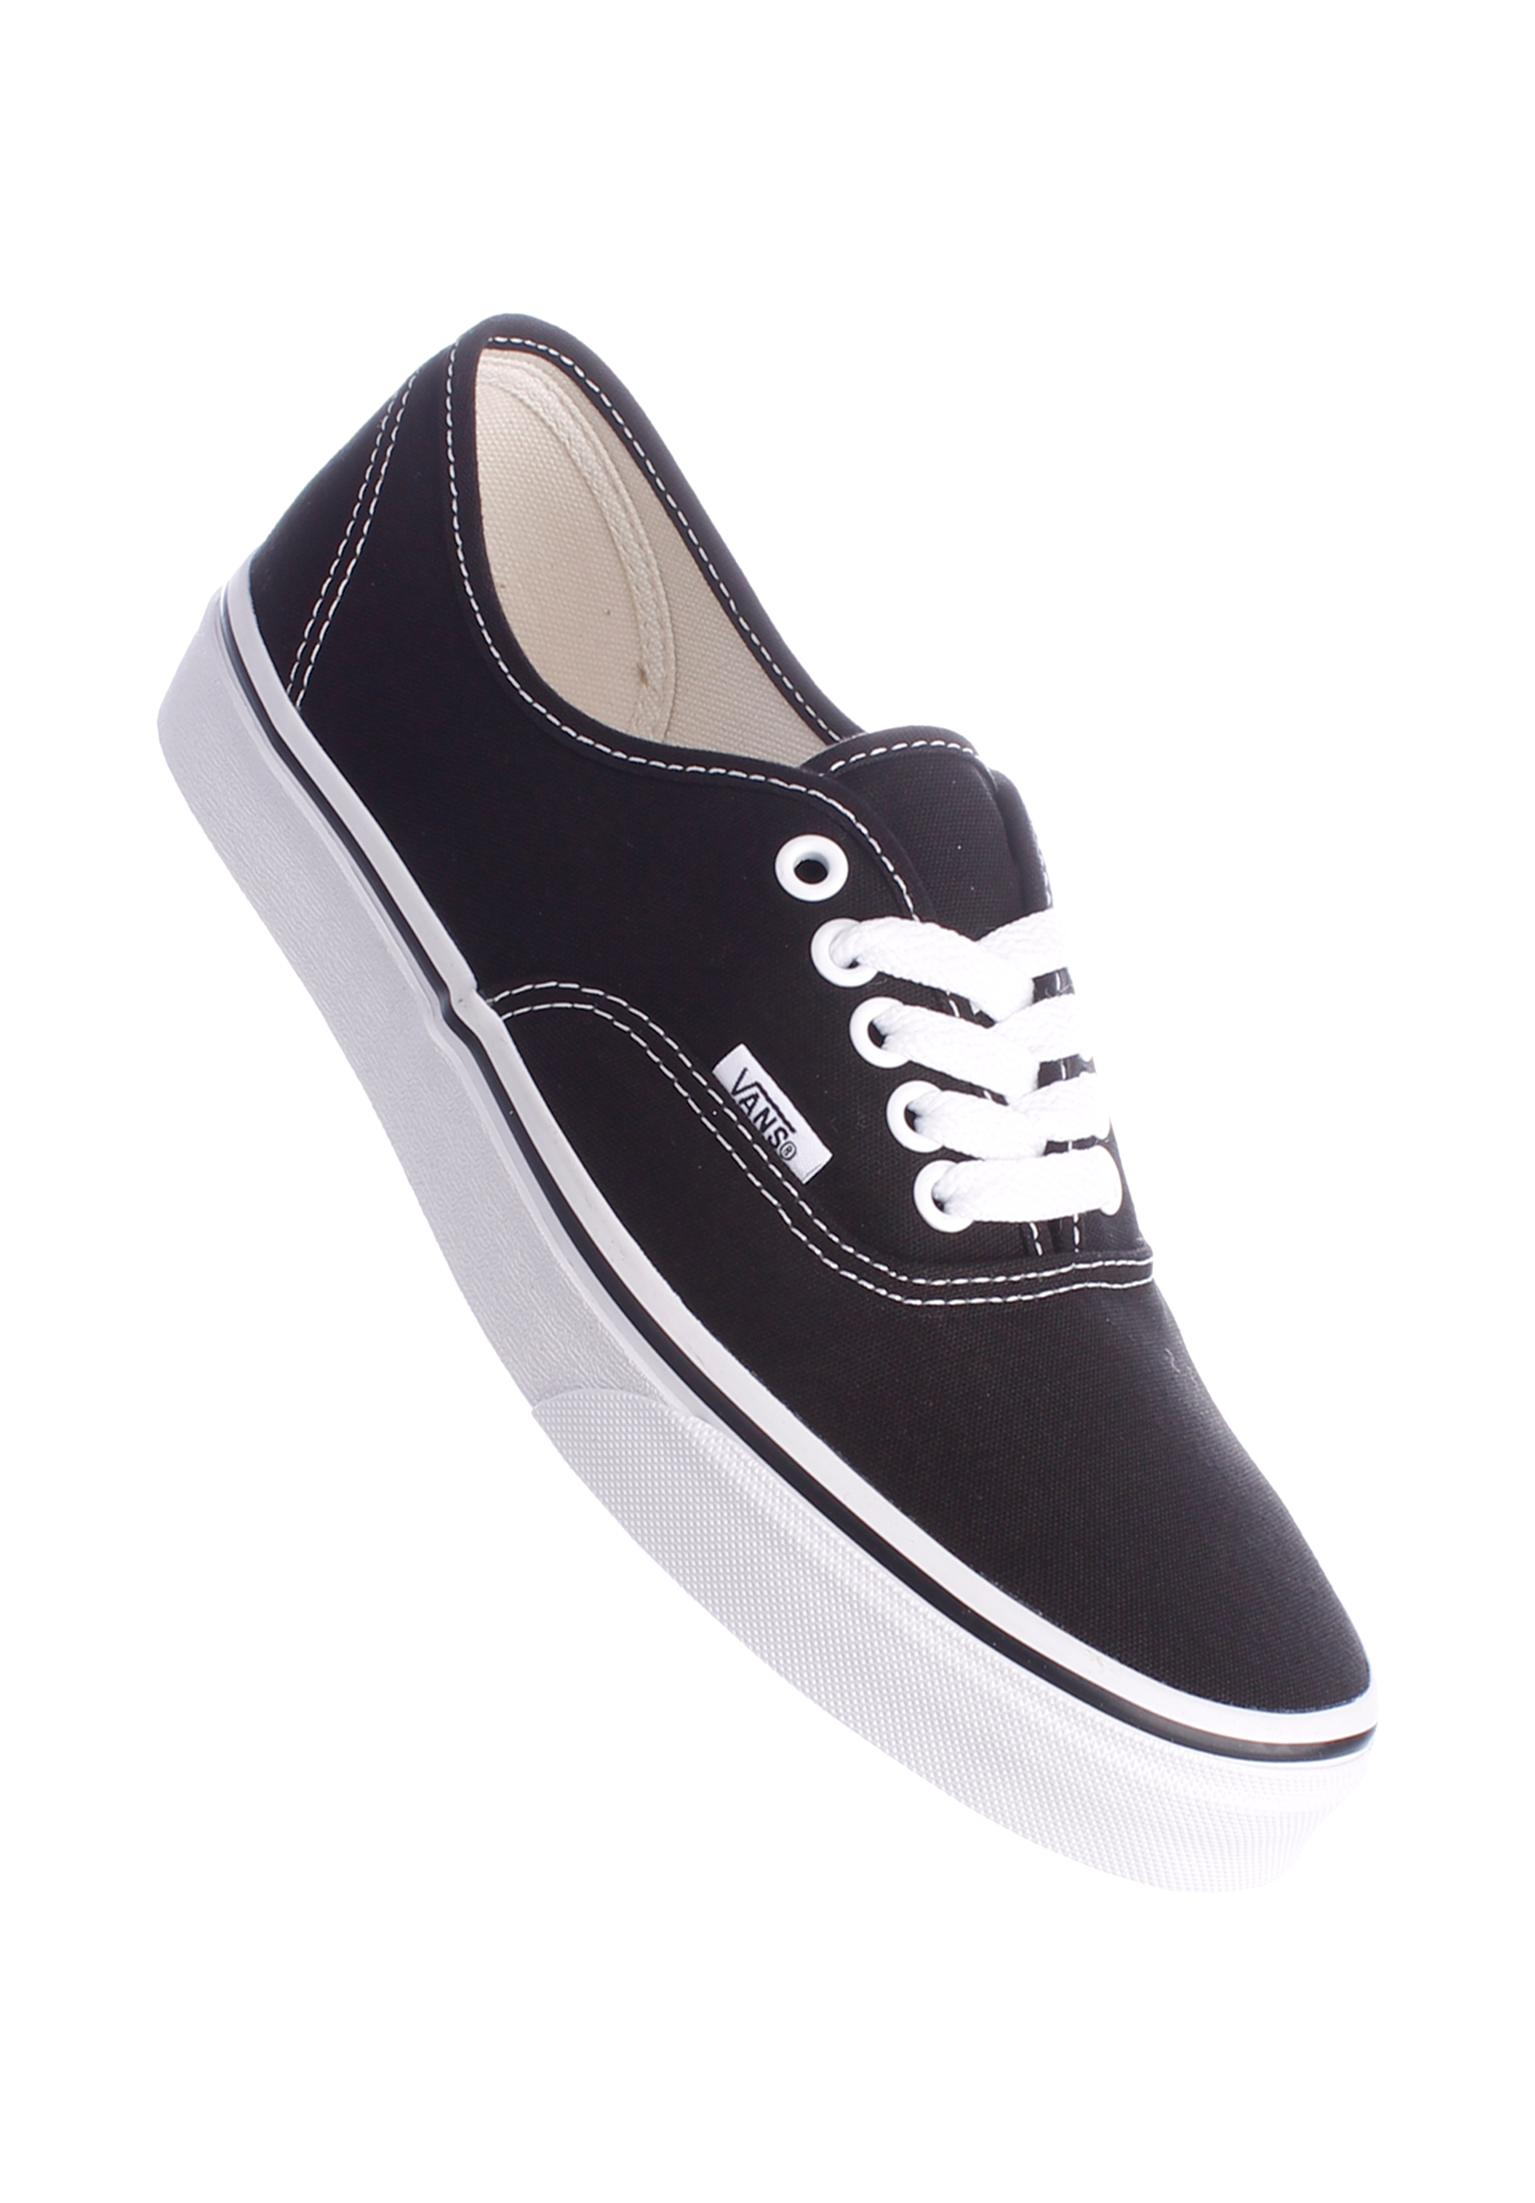 Authentic Classic Vans All Shoes in black-white for Women  8e9244b65